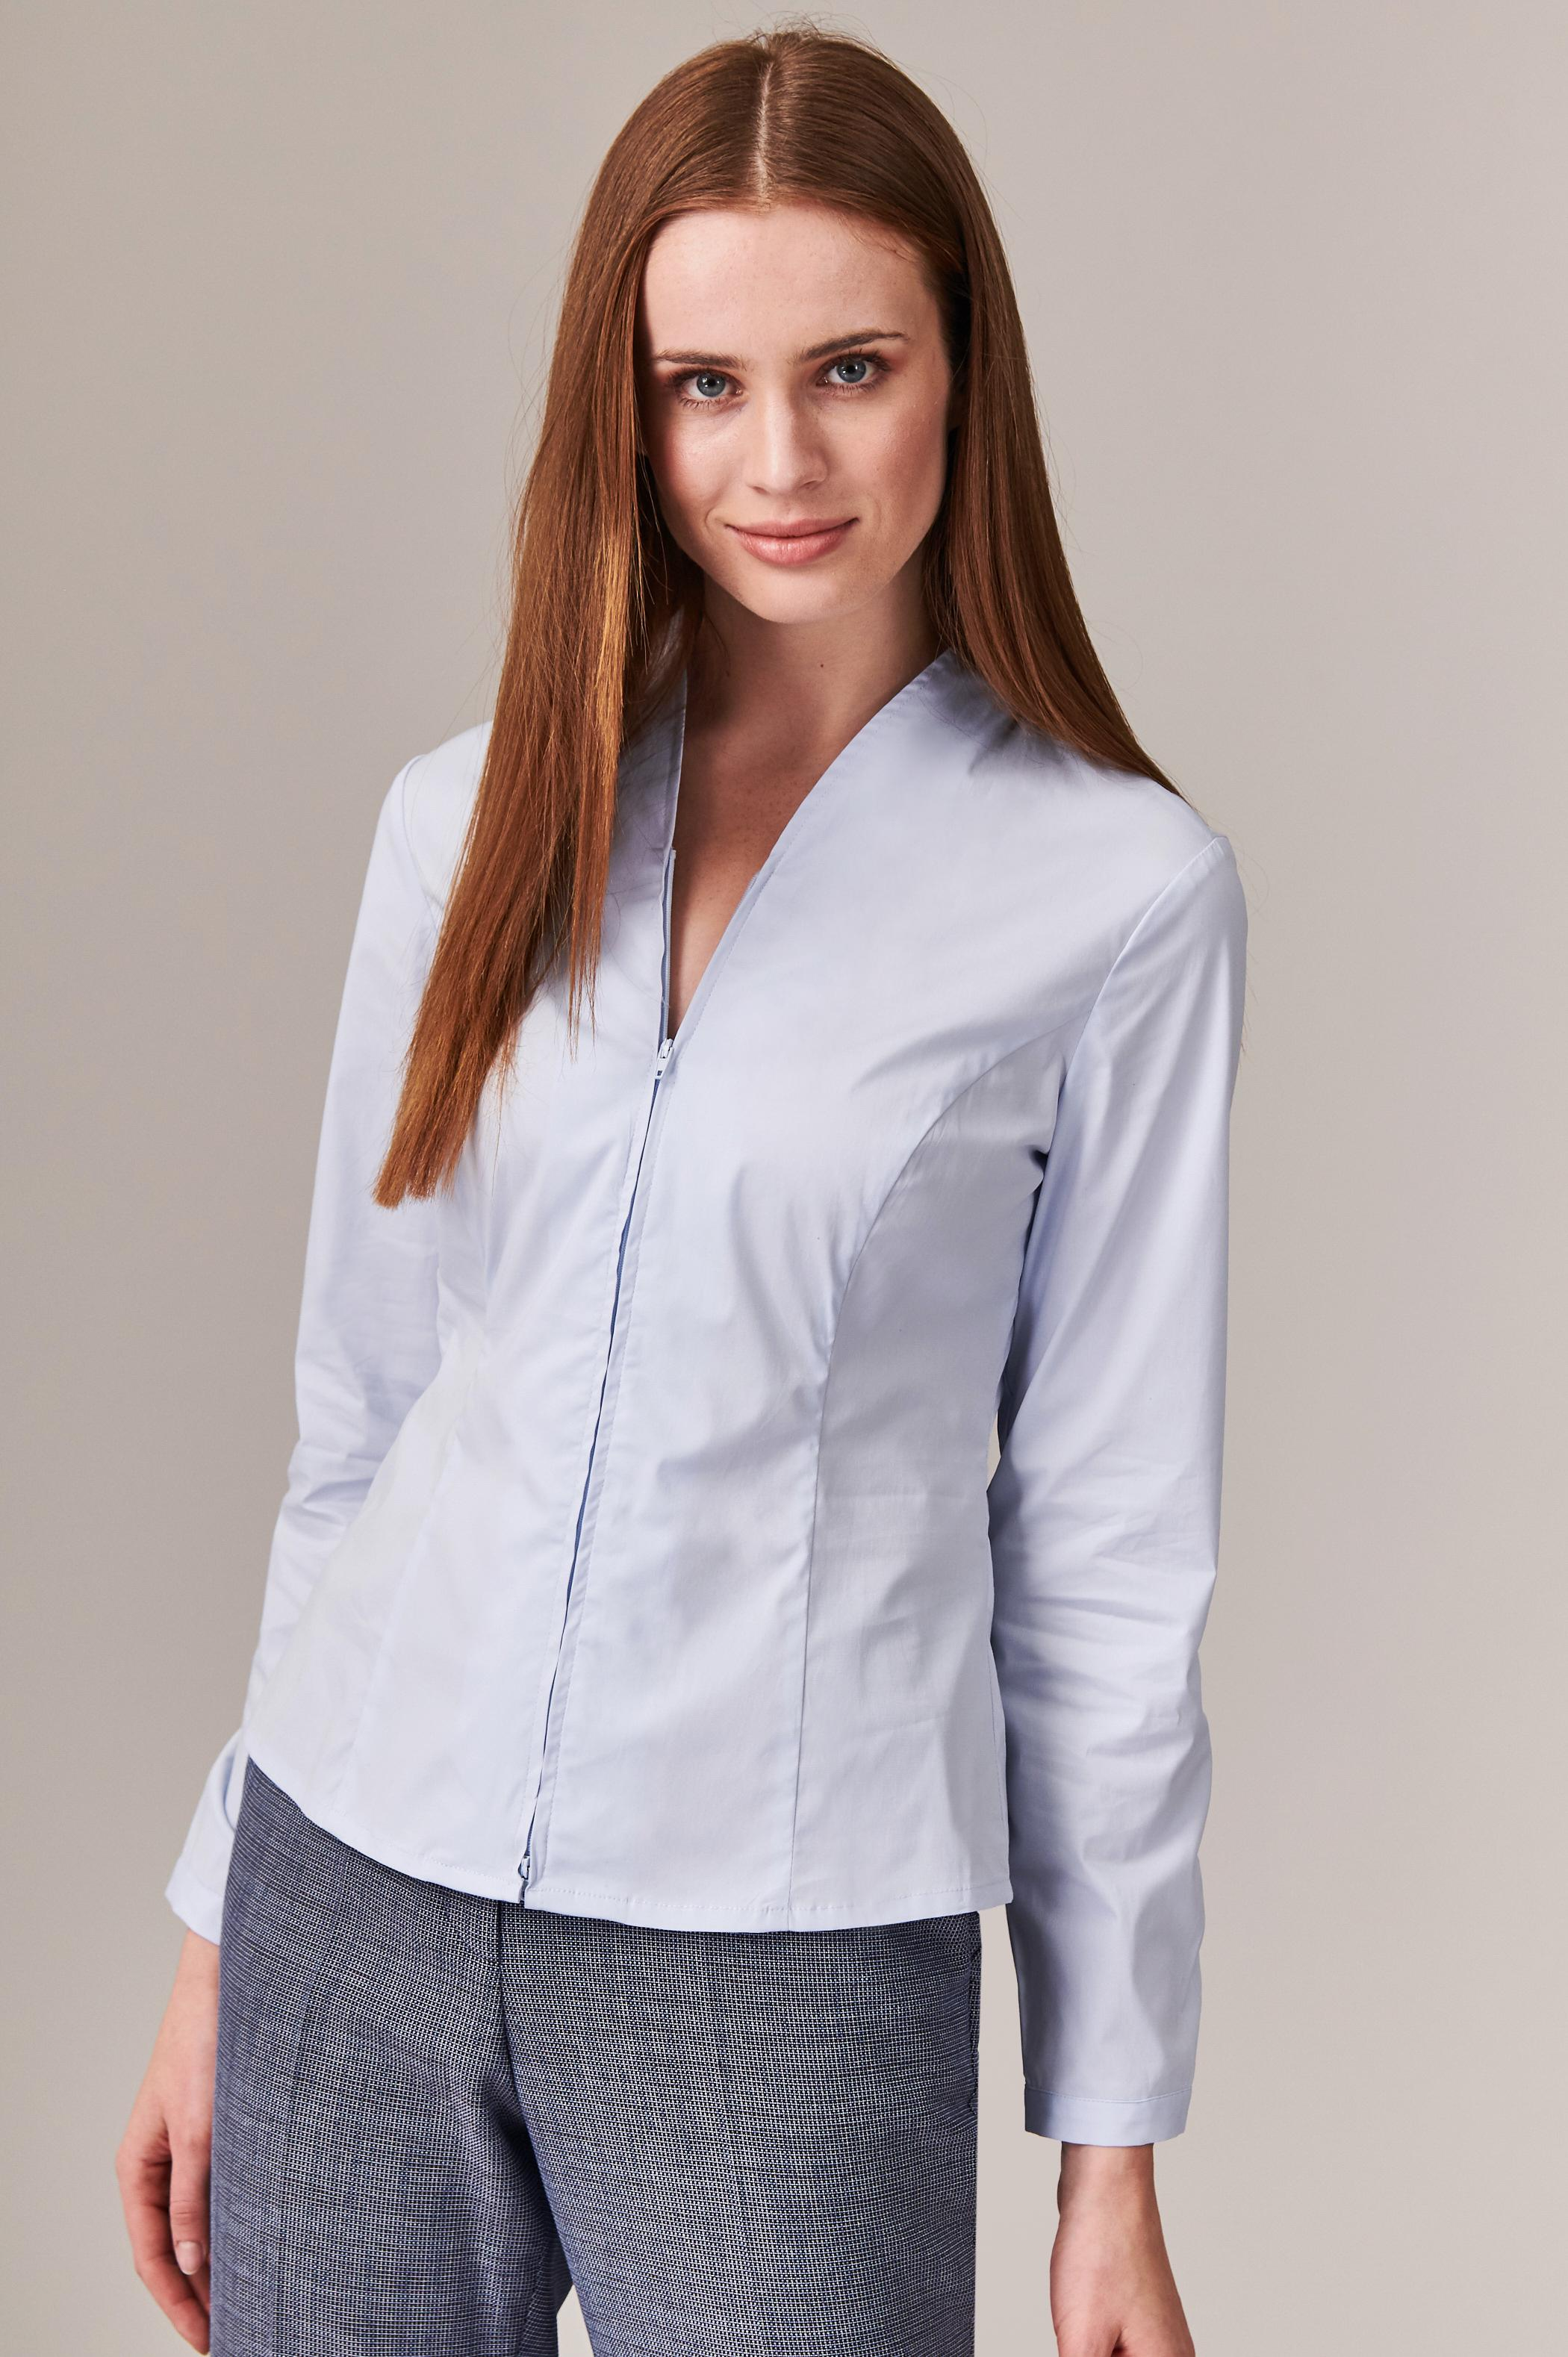 LADIES' ZIPPERED SHIRT LINAMI